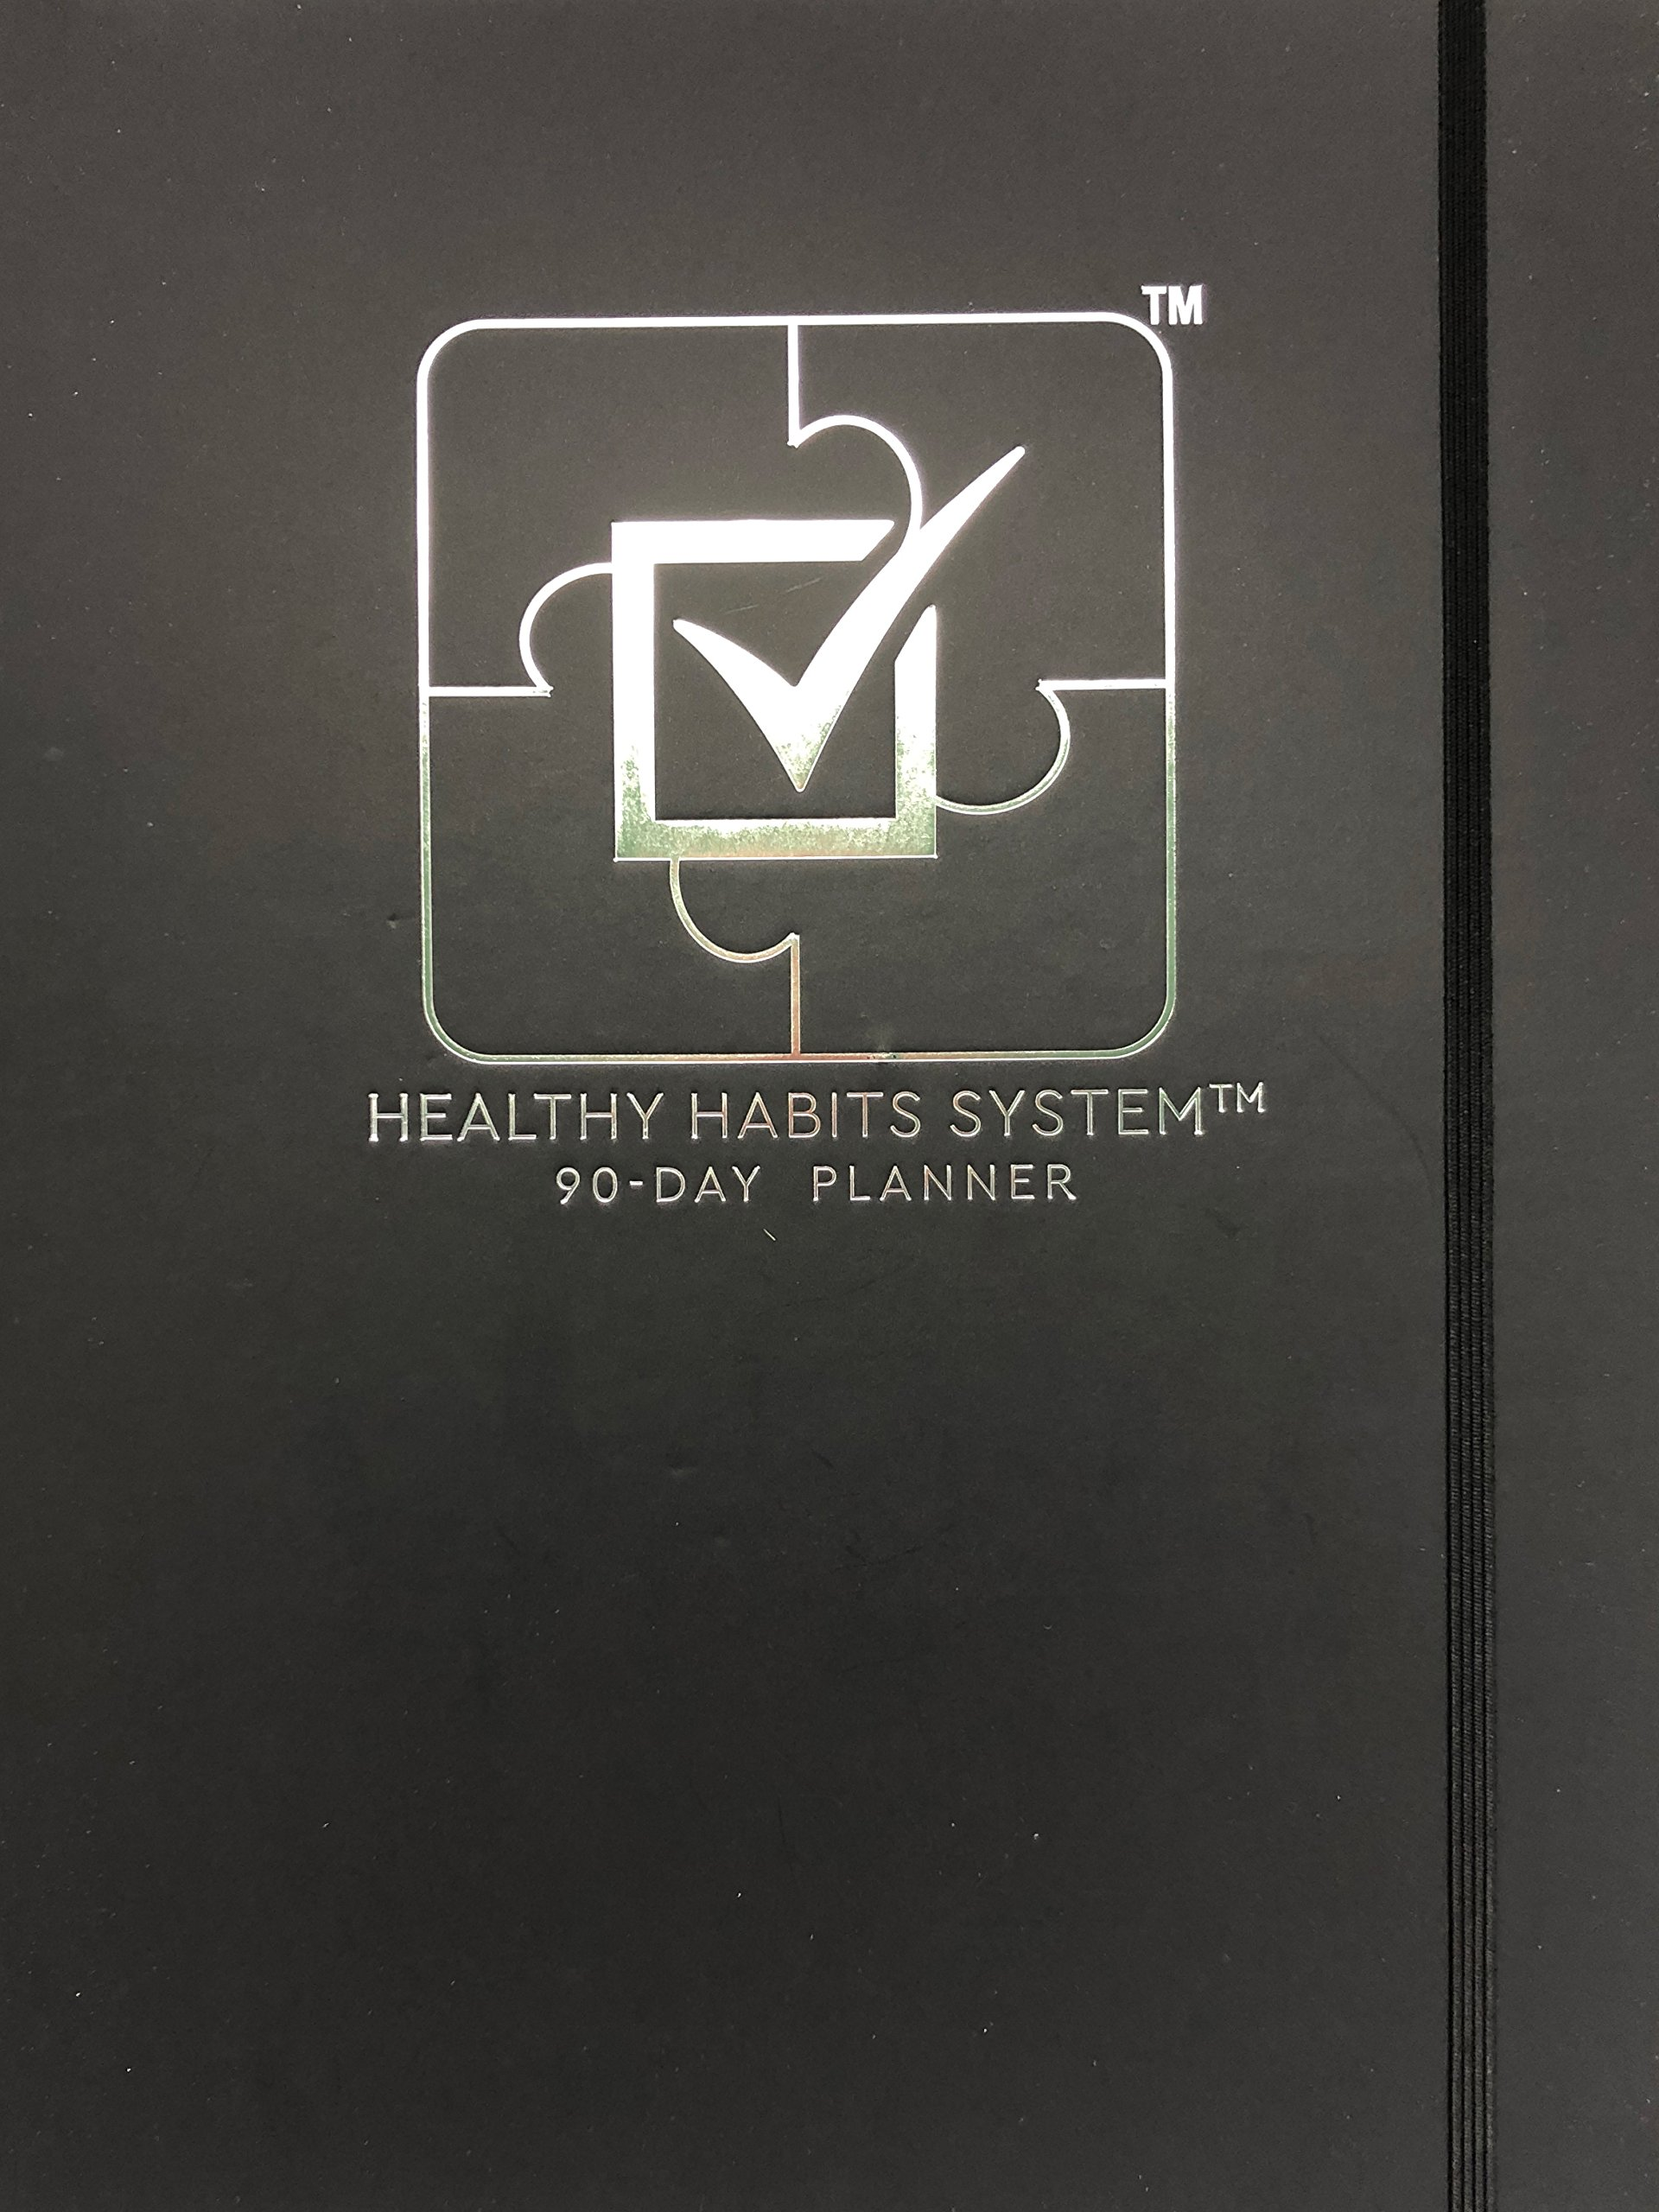 Healthy Habits System 90-Day Planner - Eat, Drink, Move, Sleep and Do Your Way to Your Goals - Set Realistic Plans and Use Proven Strategies to Achieve Results